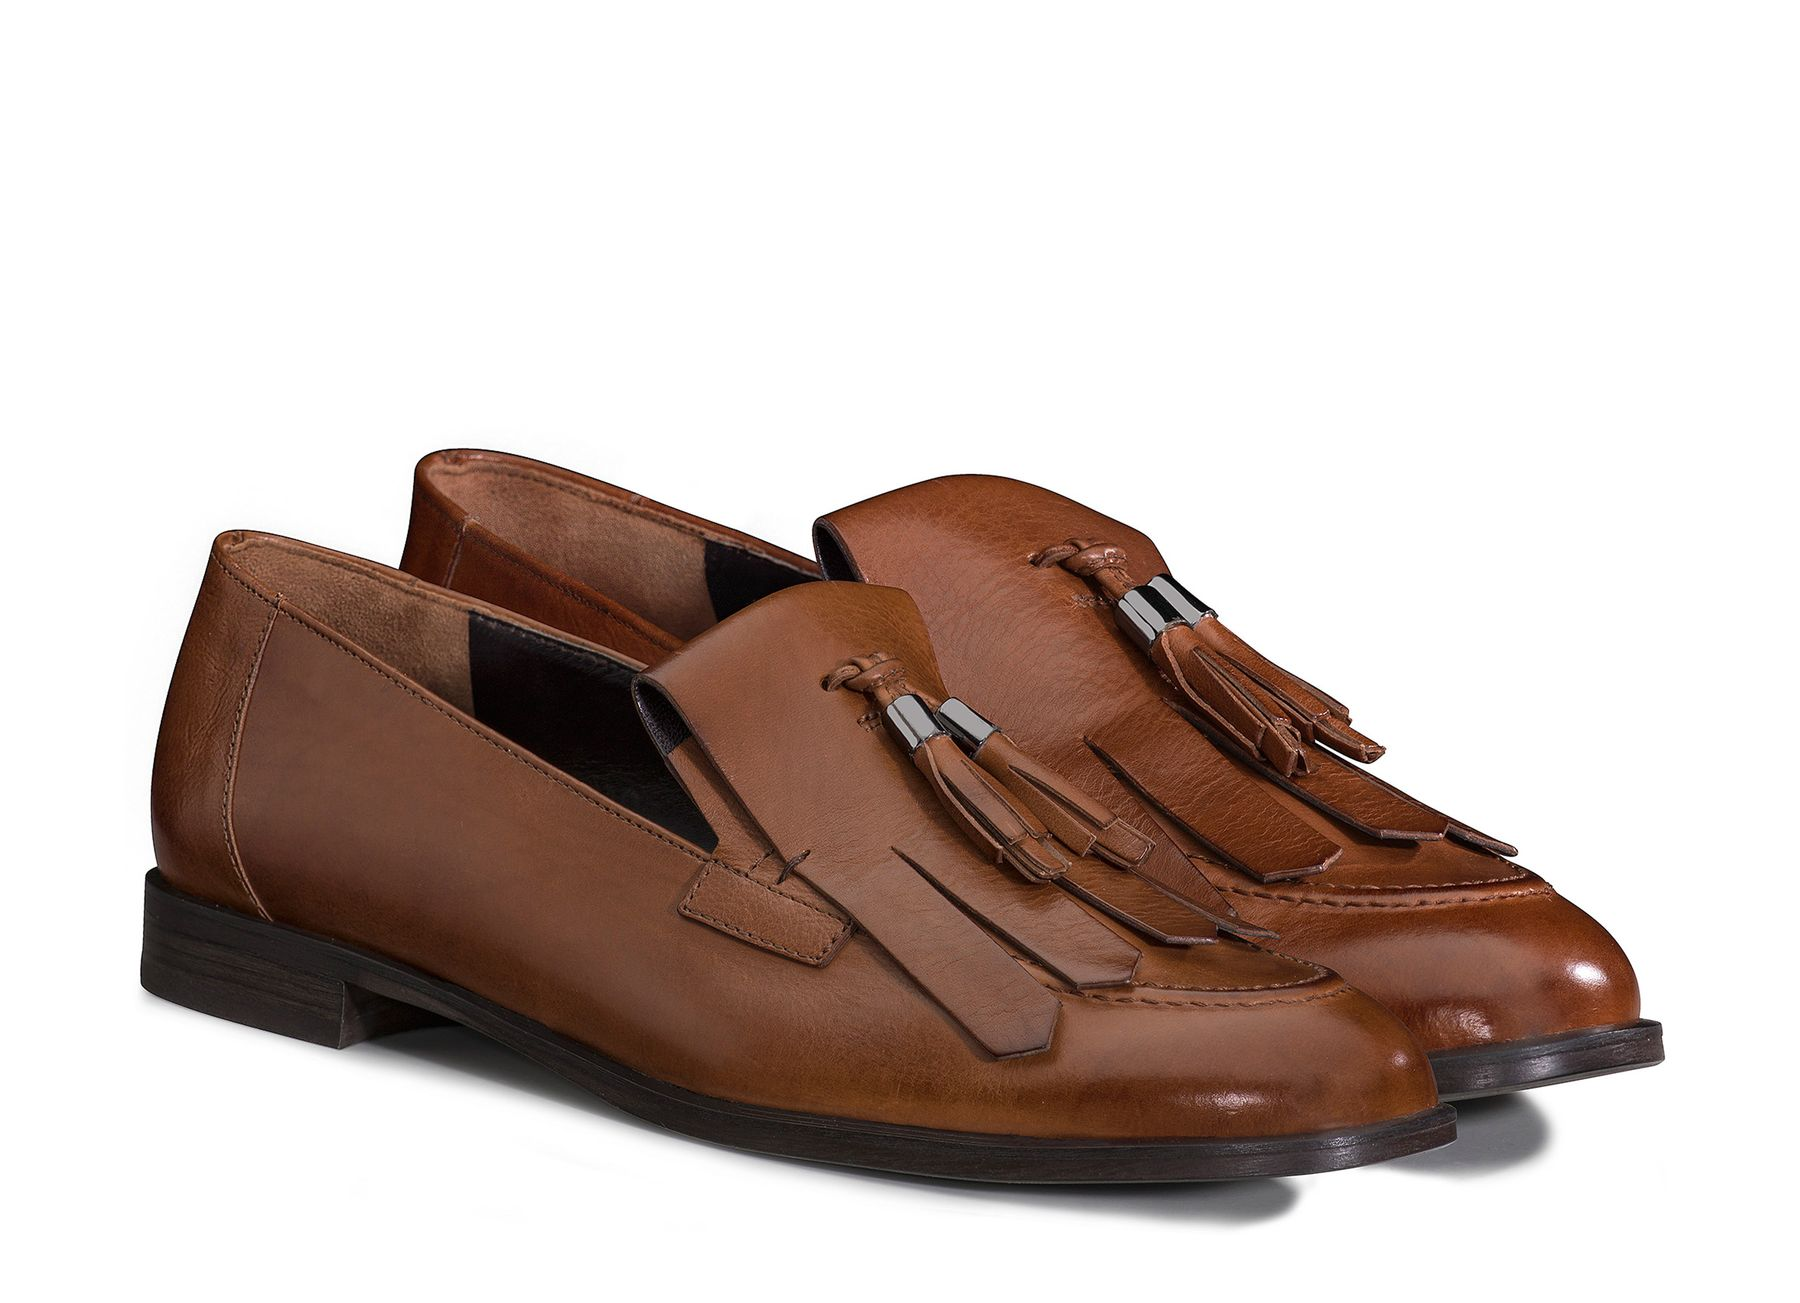 dc1a0f559ae Tassel Loafers in Cognac - Paul Green